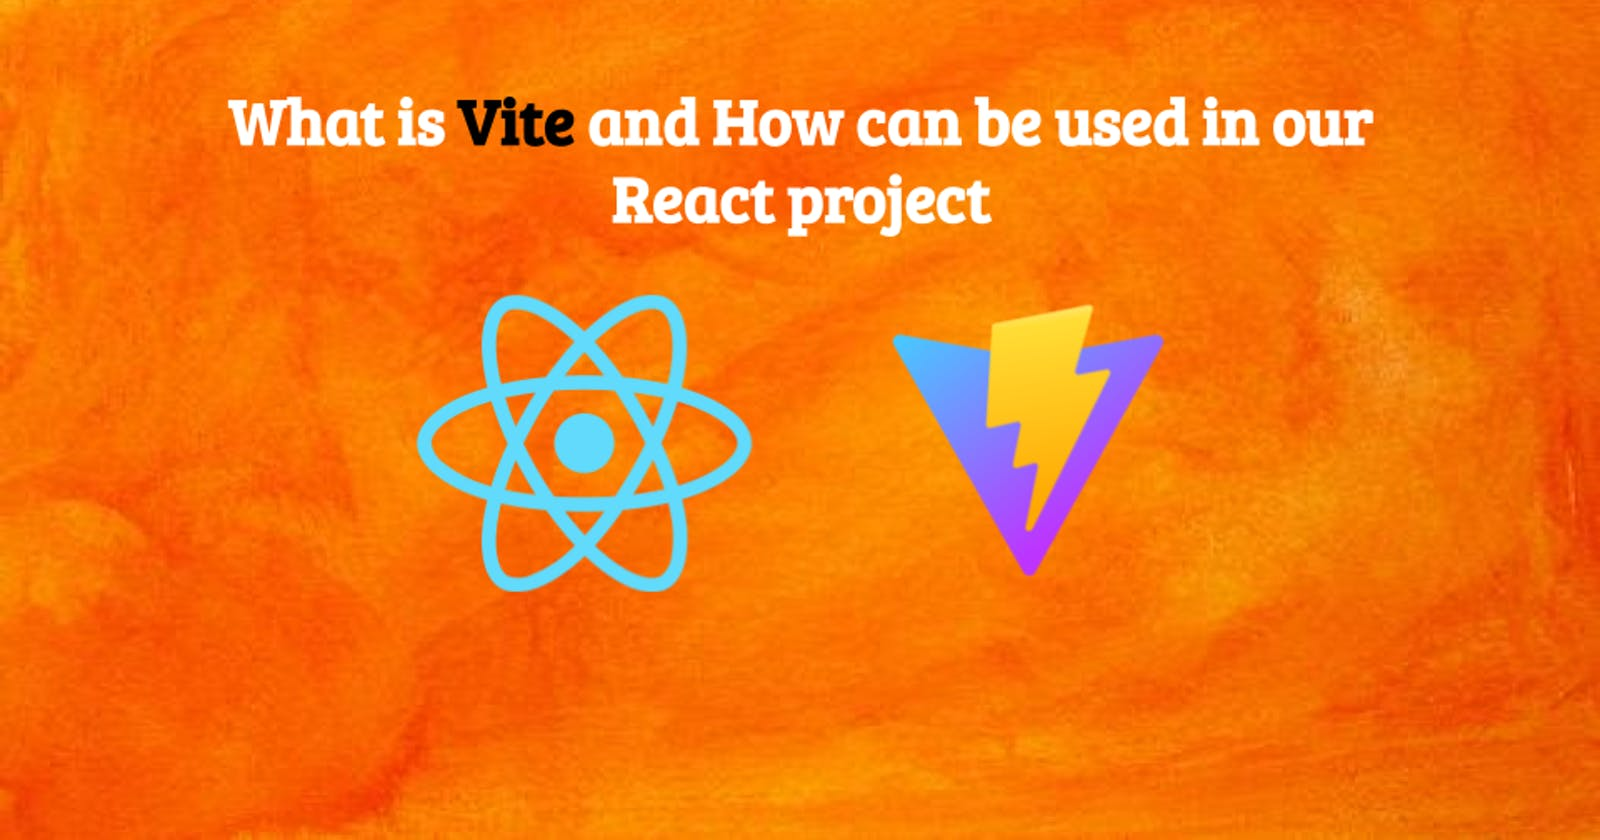 What is Vite and How can be used in our React project